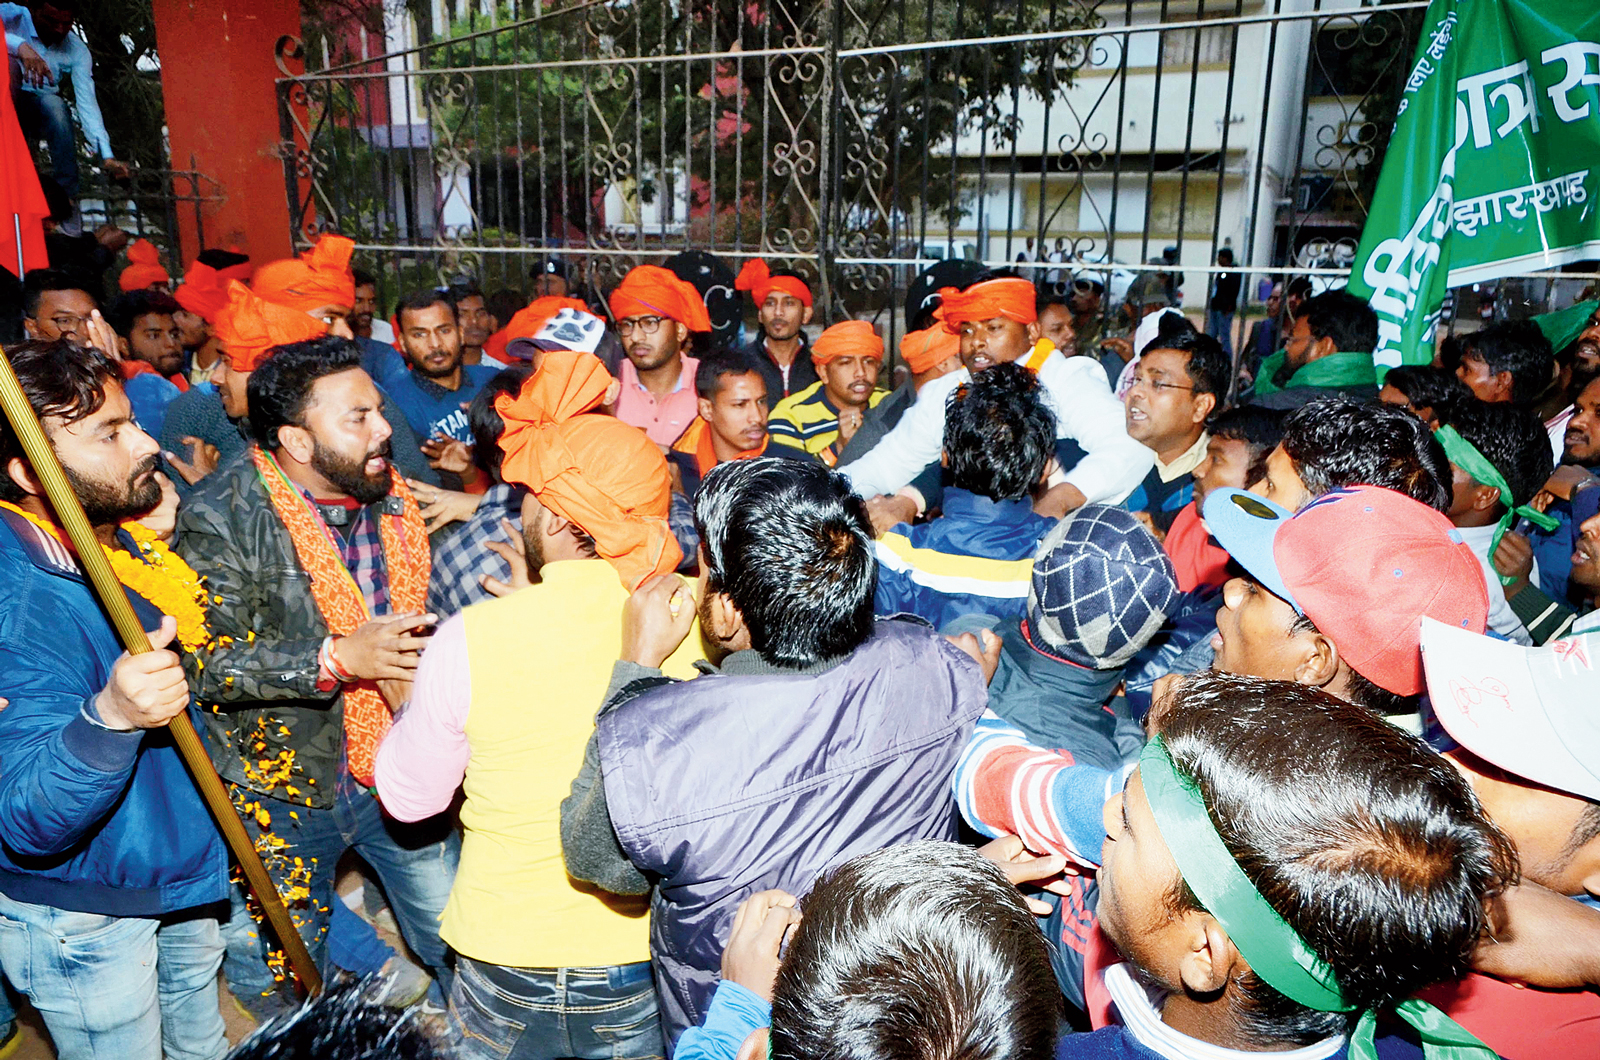 Supporters of ABVP and Adivasi Chhatra Sangh clash outside the counting centre at Dr Shyama Prasad Mukherjee University in Morabadi, Ranchi, on Wednesday